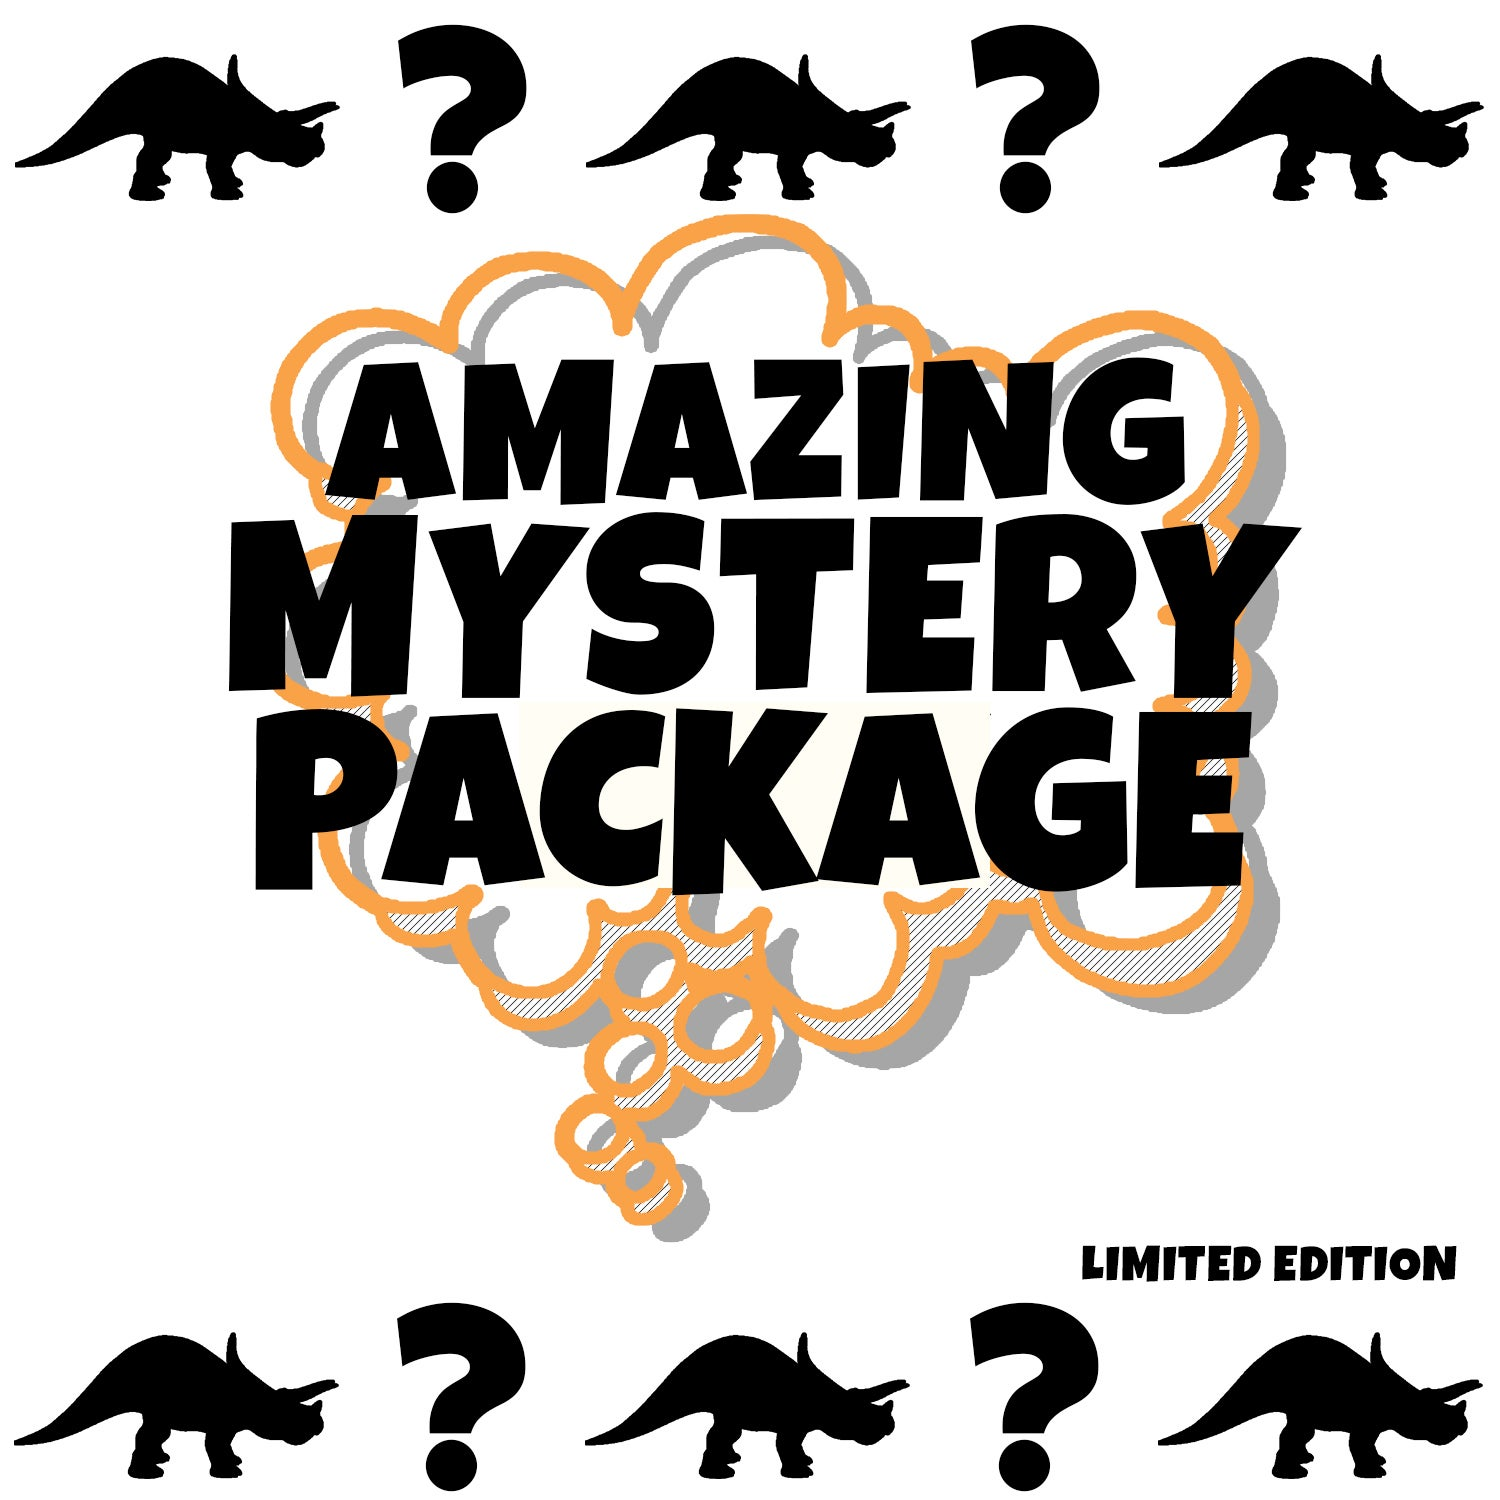 Image of AMAZING MYSTERY PACKAGE